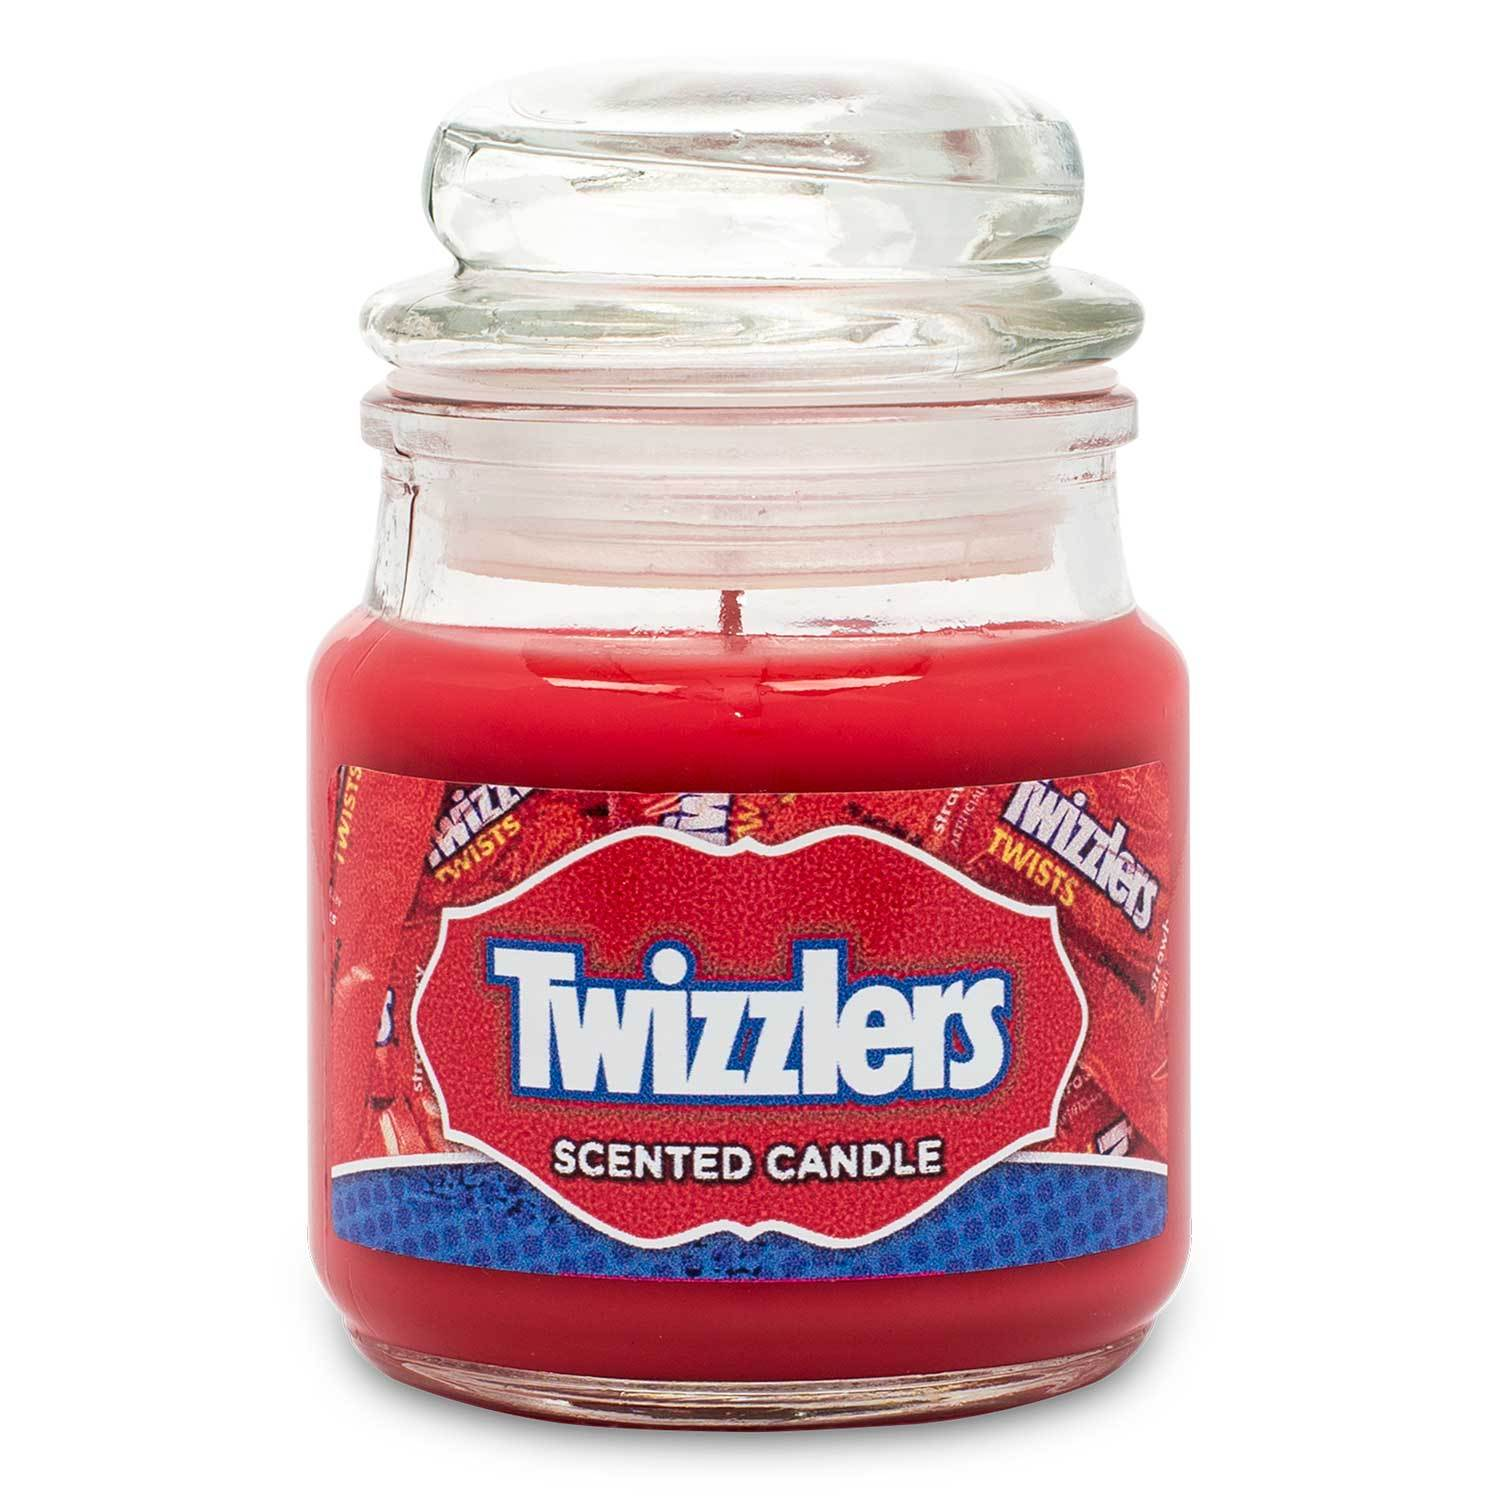 HERSHEY'S Twizzlers Scented Mini Candle Candles Candlemart.com $ 2.99